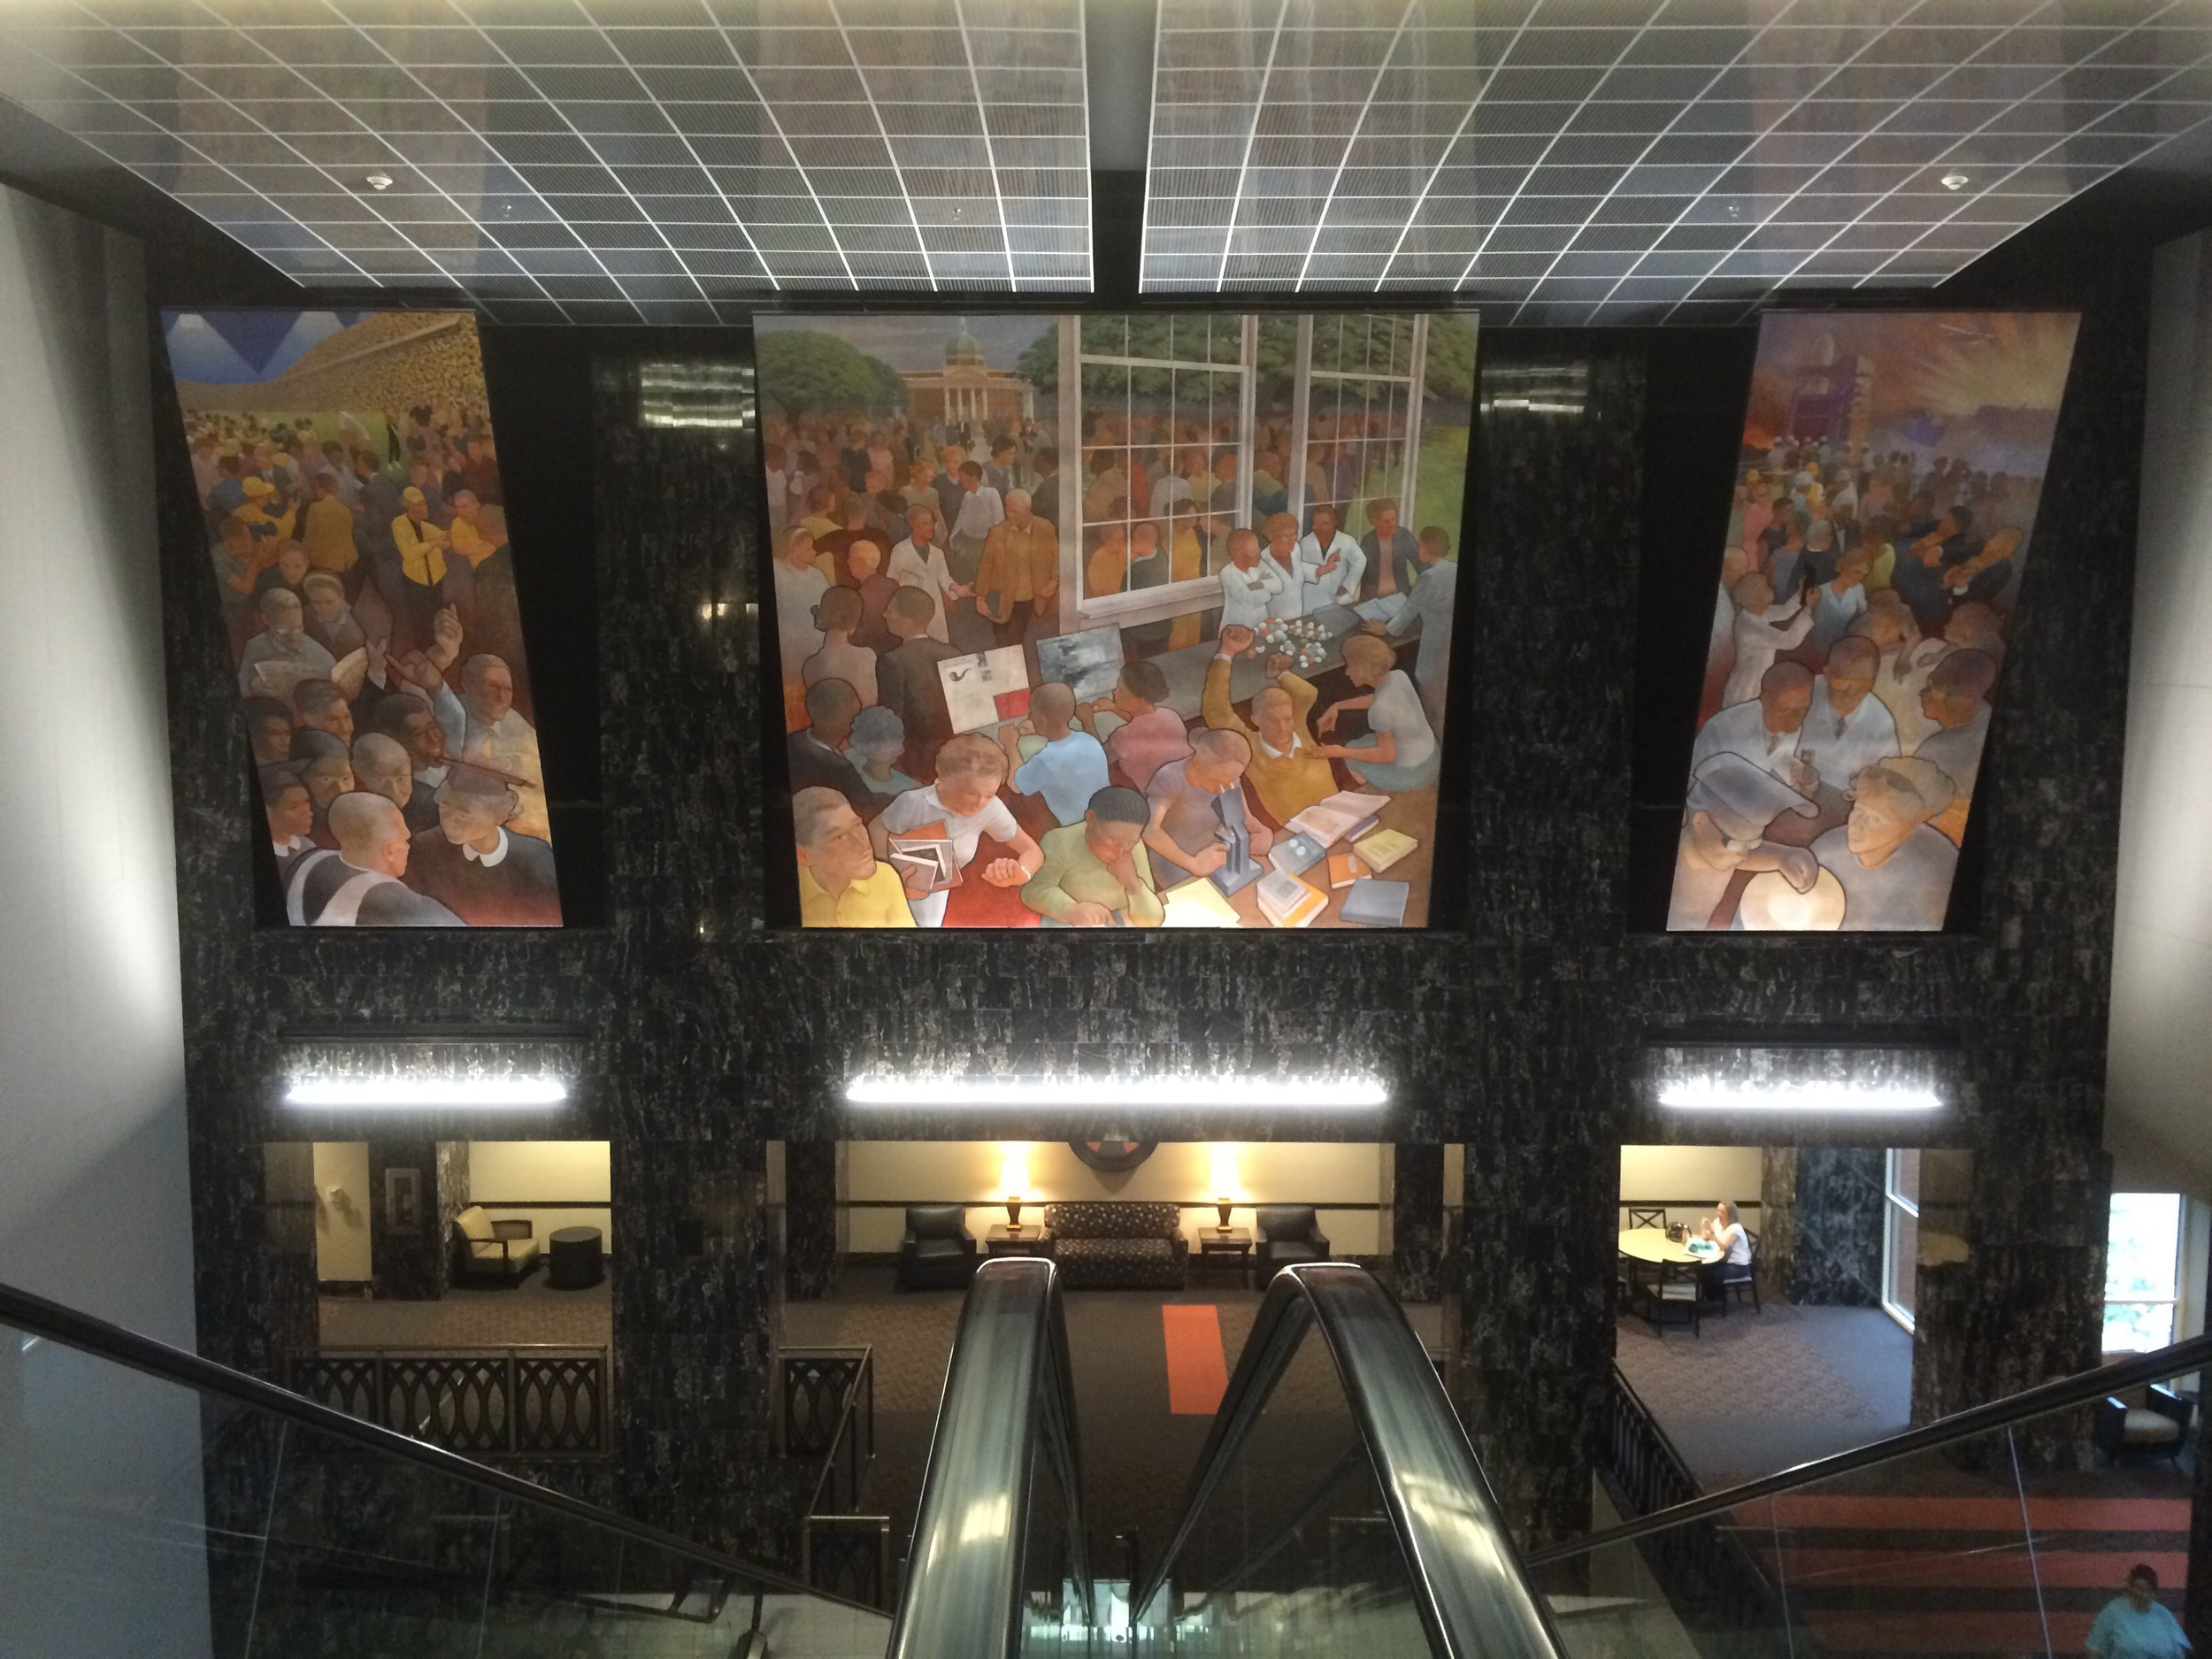 Saw this incredible mural each day while taking the series of escalators.